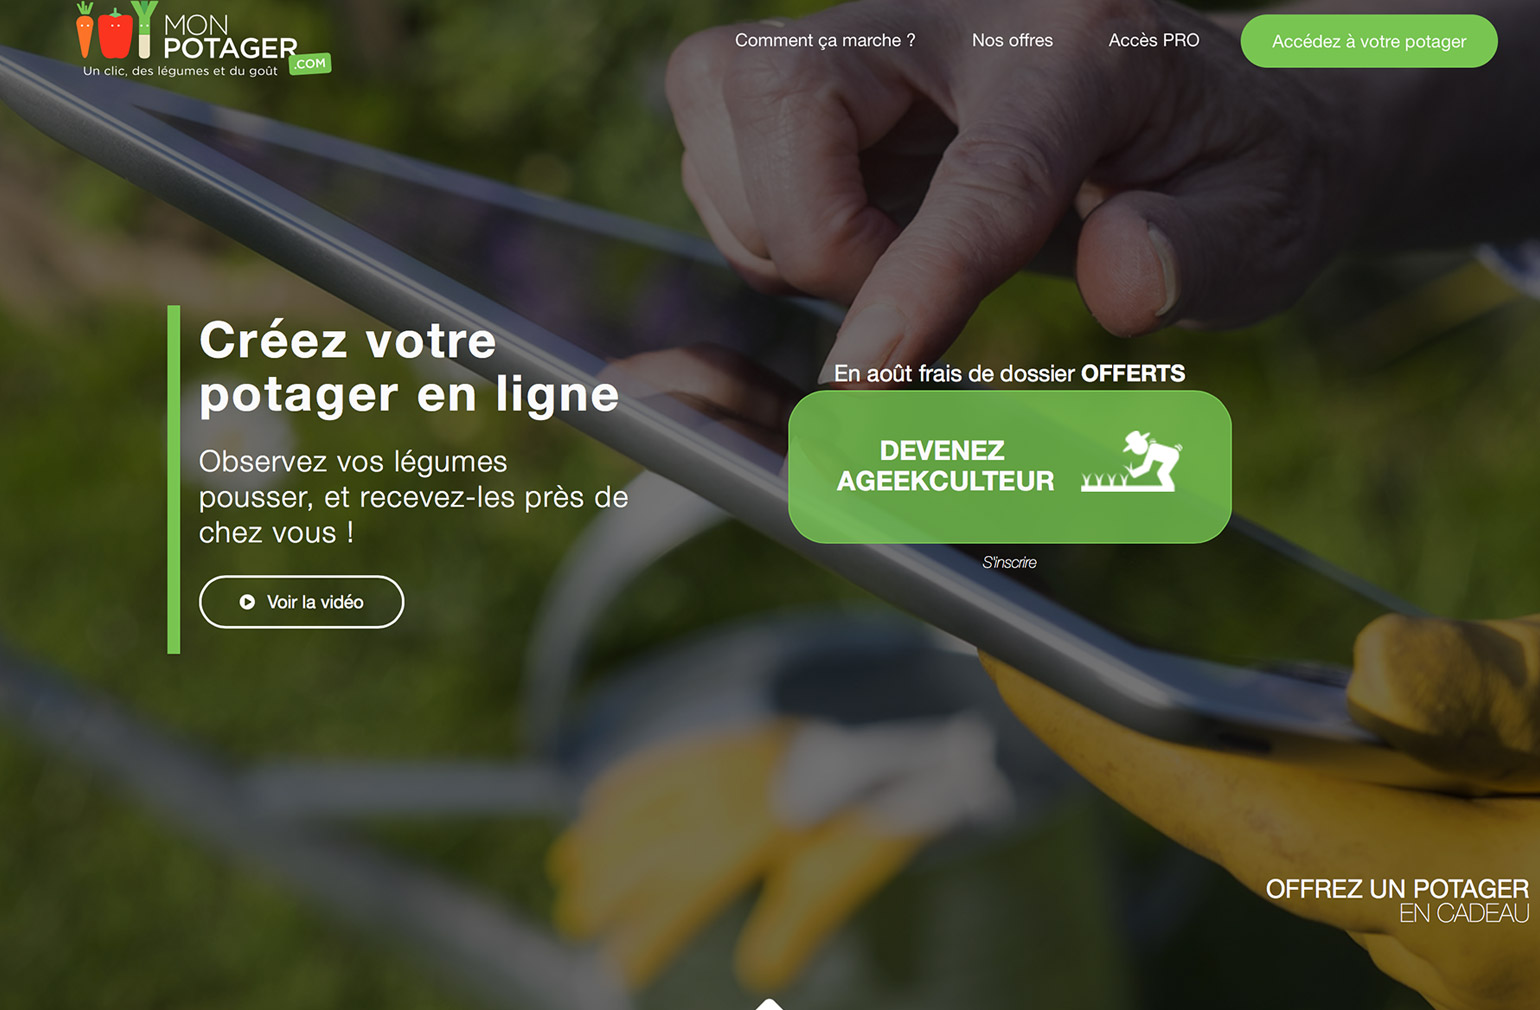 Monpotager Homepage